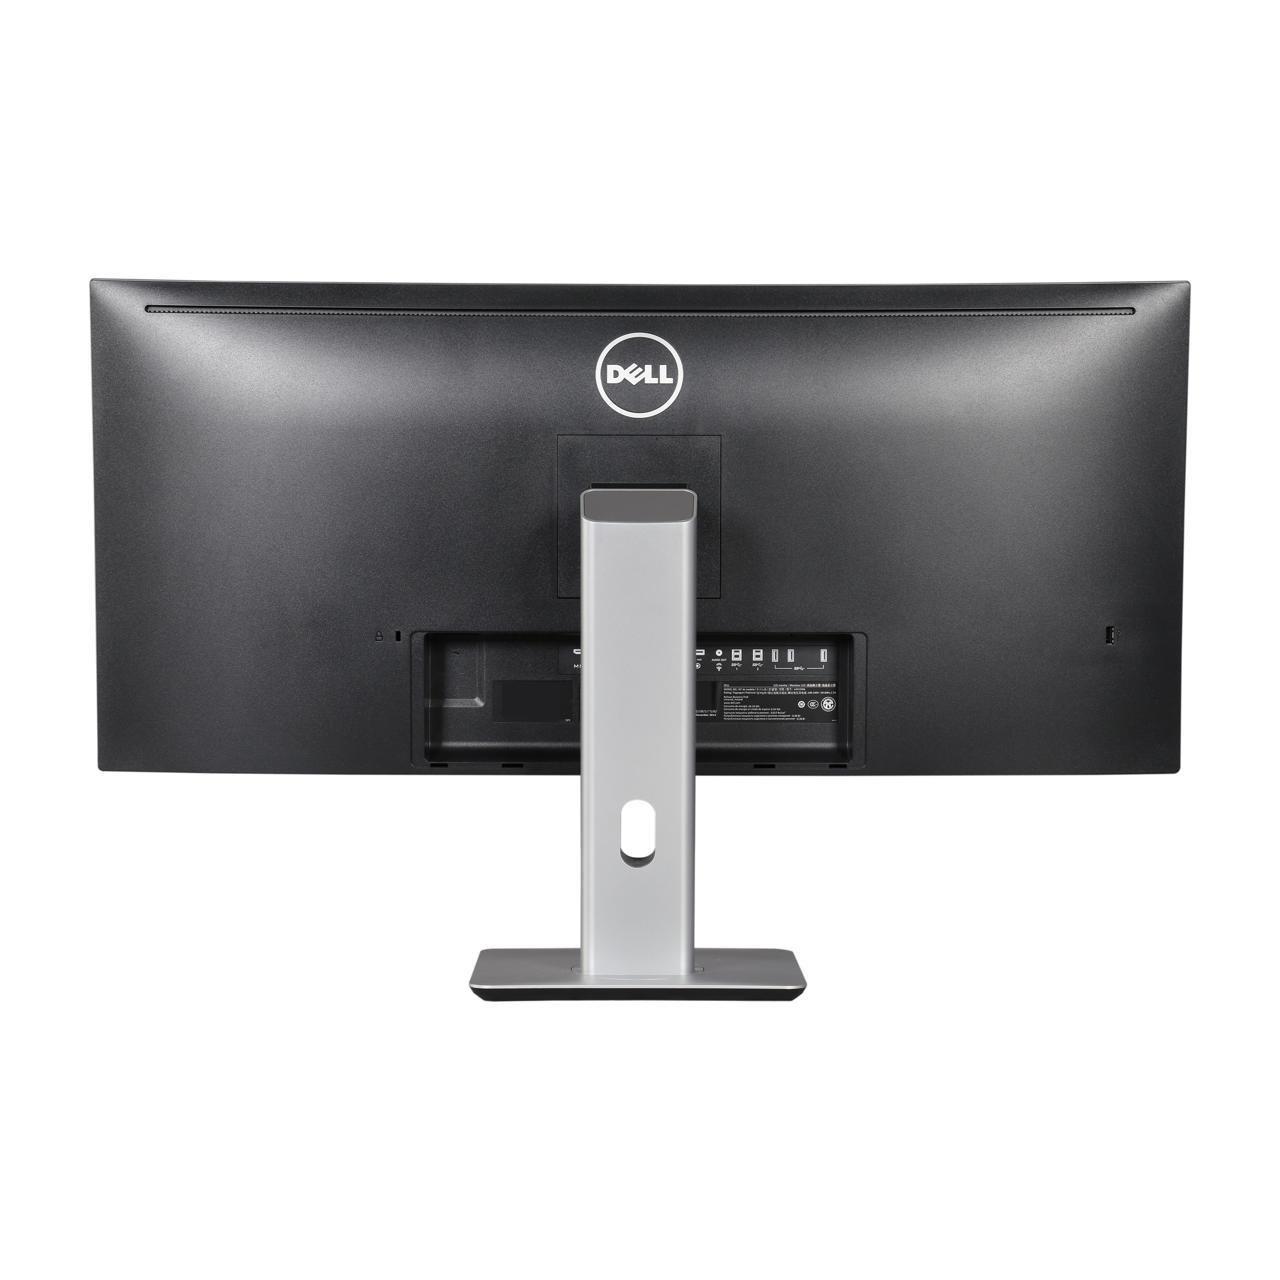 DELL 34 LED U3415W 5MS 60Hz HDMI-DP-mDP Kavisli EV Ofis Tipi Monitör 3440 X 1440